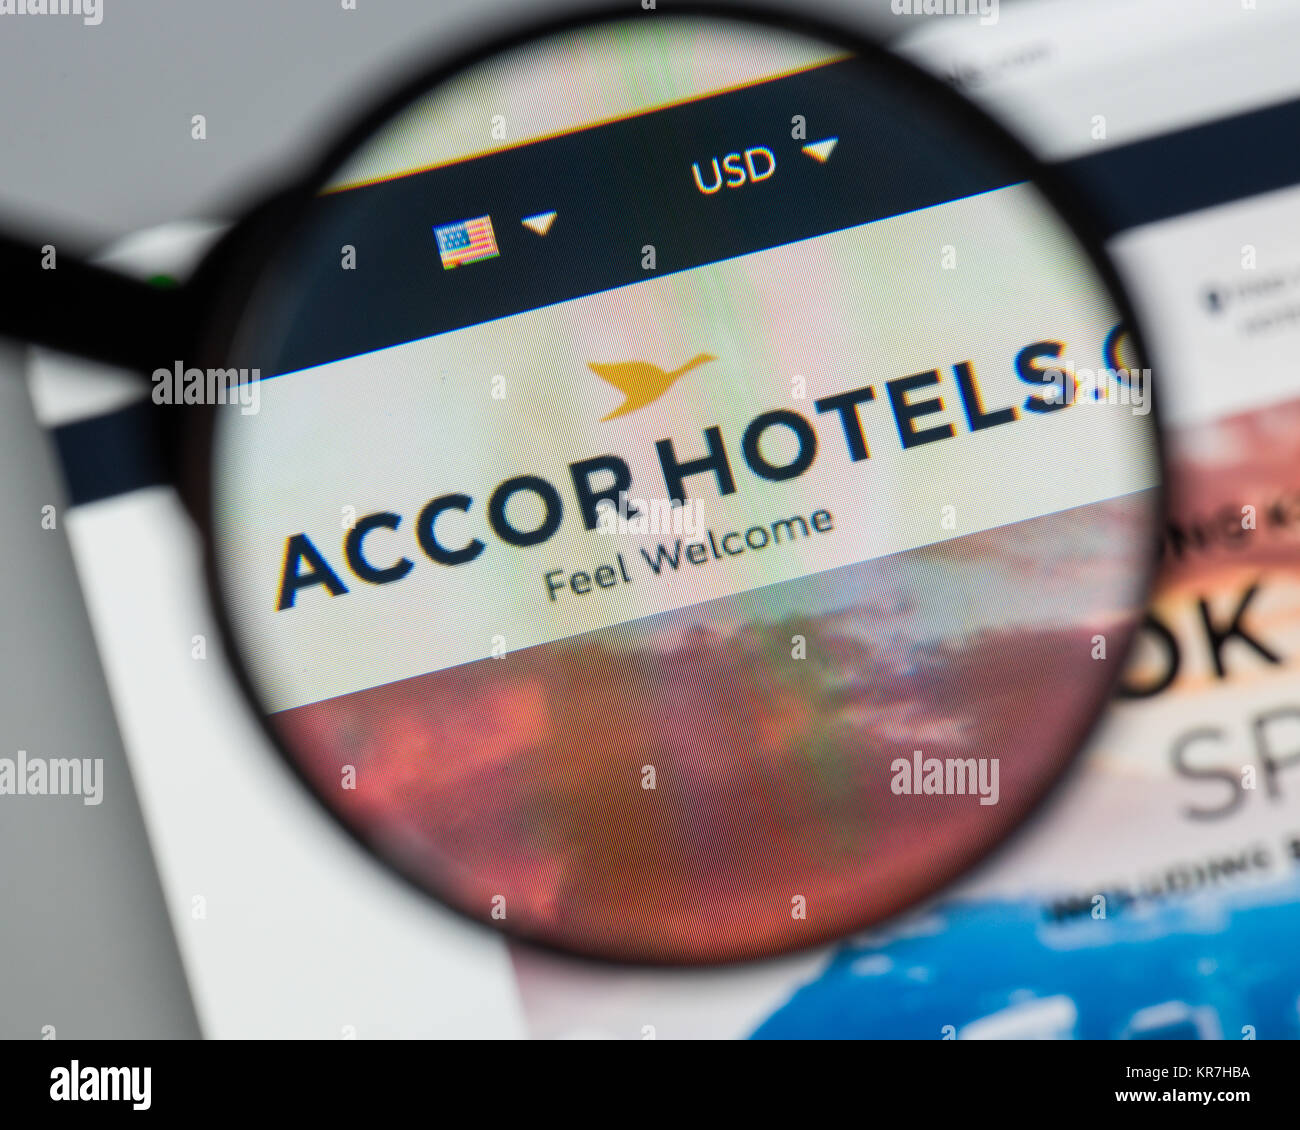 Although Accor was outperformed by the global hotel market in , it delivered a record financial performance, driven by a strong footprint and the rapid implementation of the company's three-year restructuring plan, set out by its new CEO in